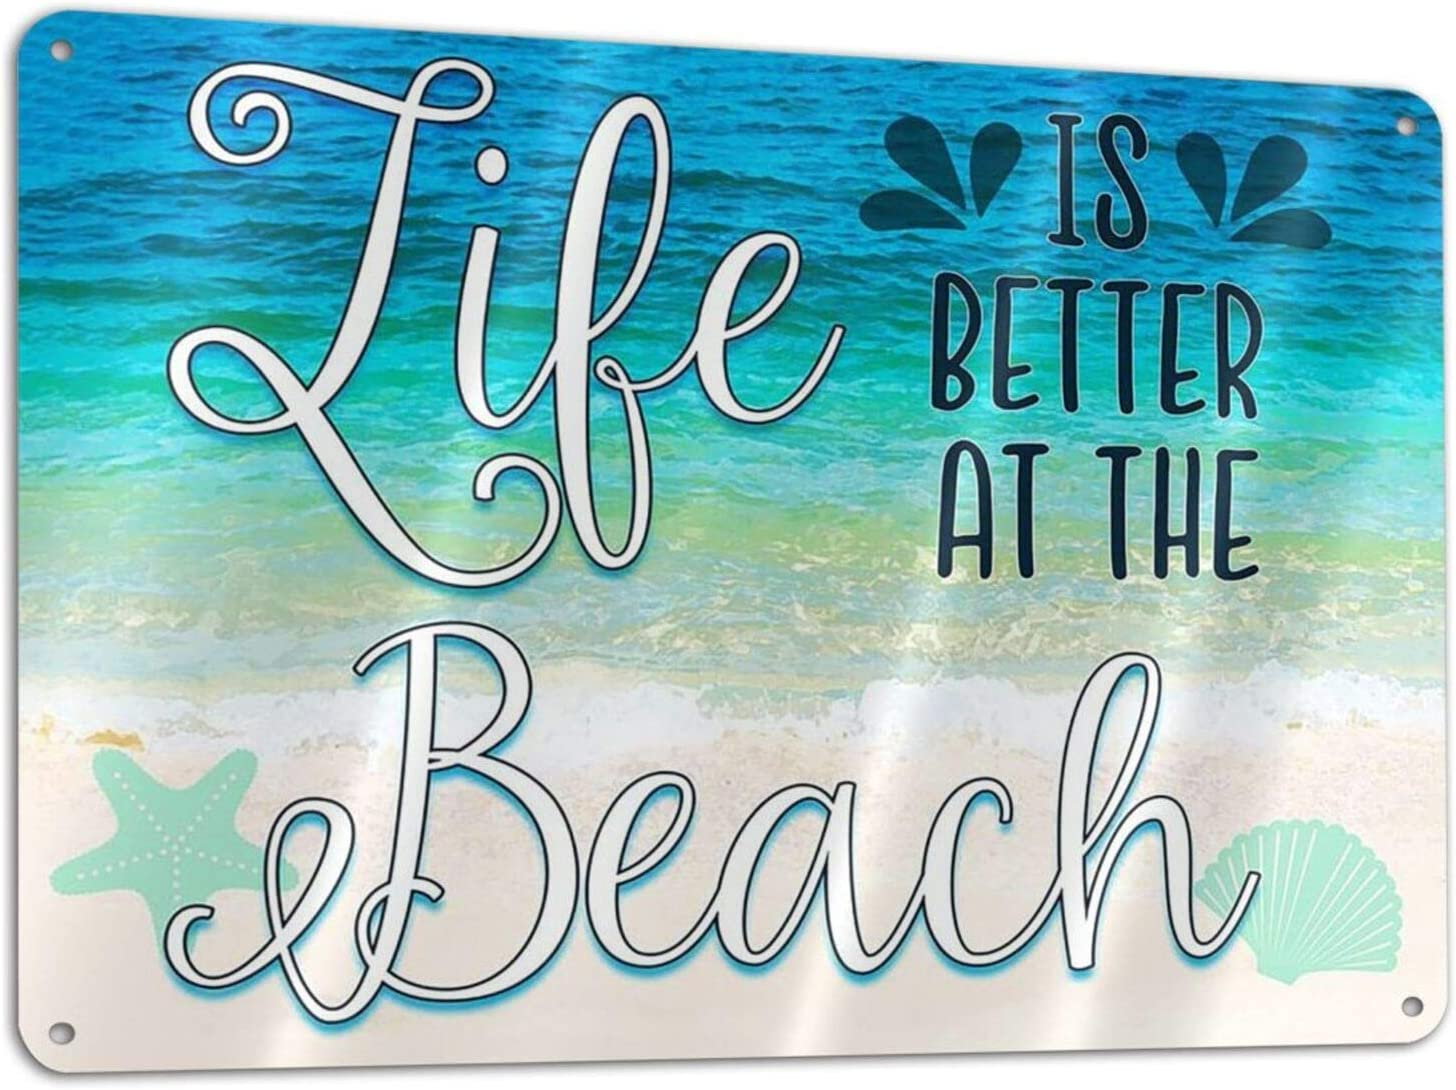 Life is Better at The Beach Metal Sign Poster Painting Tin Sign Vintage Wall Decor for Cafe Bar Pub Home Beer Decoration Crafts 12x8 in